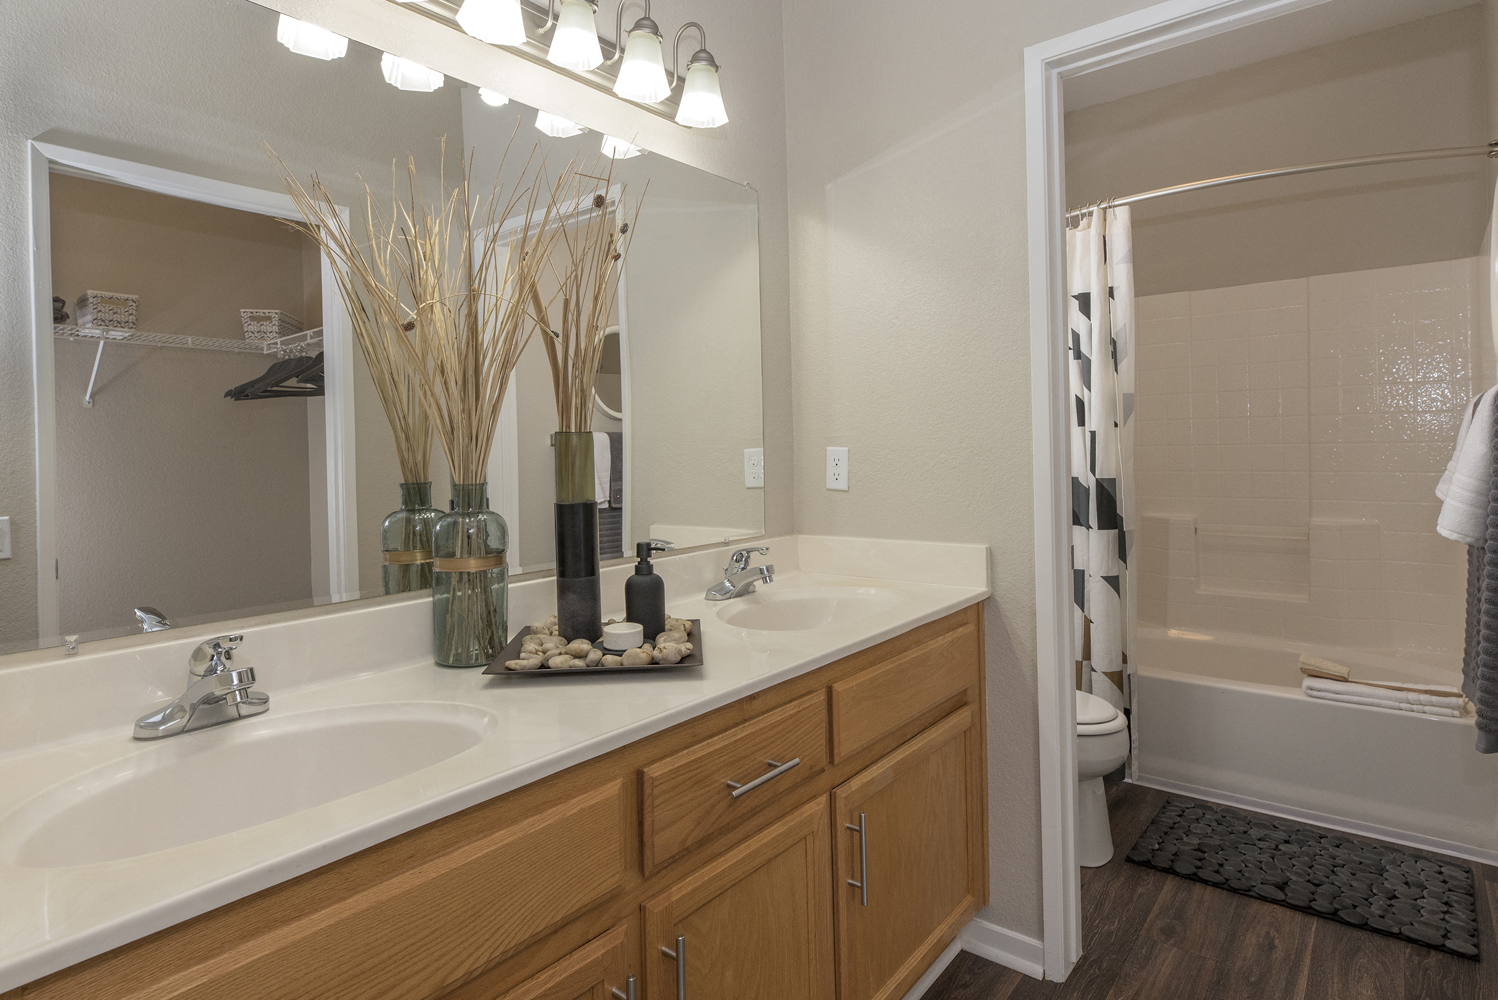 Luxurious Bathrooms at Atwood Apartments, California